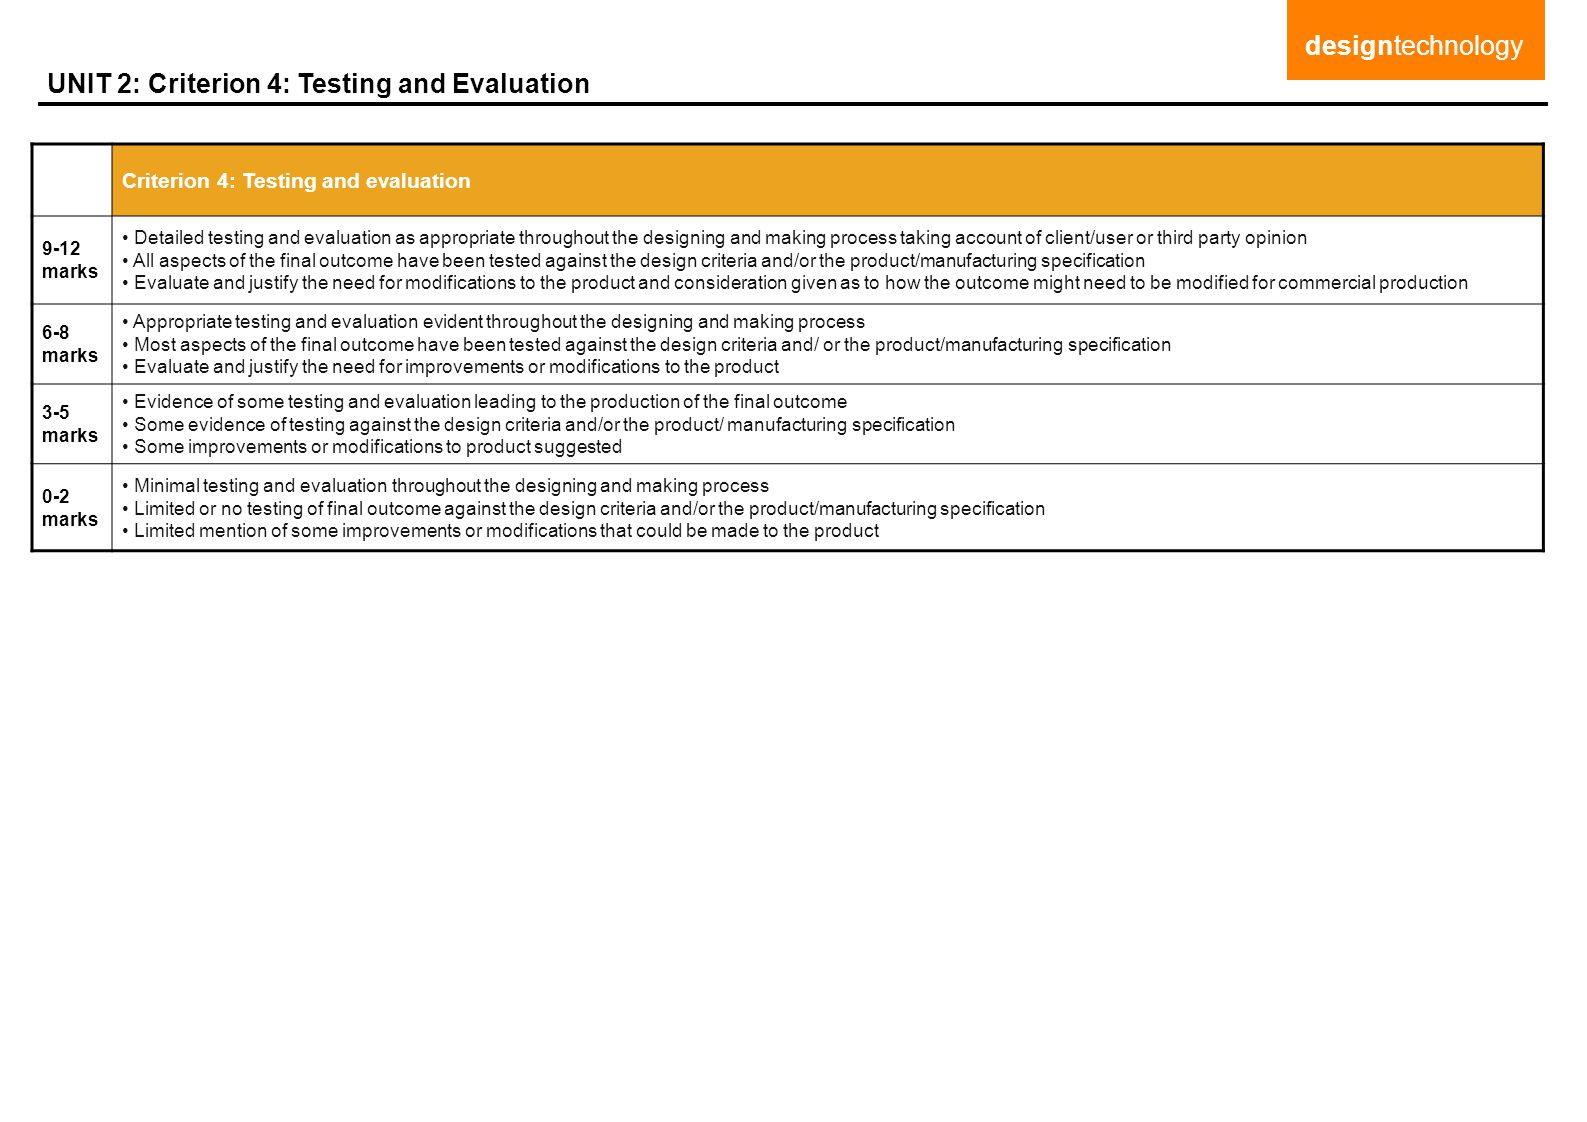 UNIT 2: Criterion 4: Testing and Evaluation